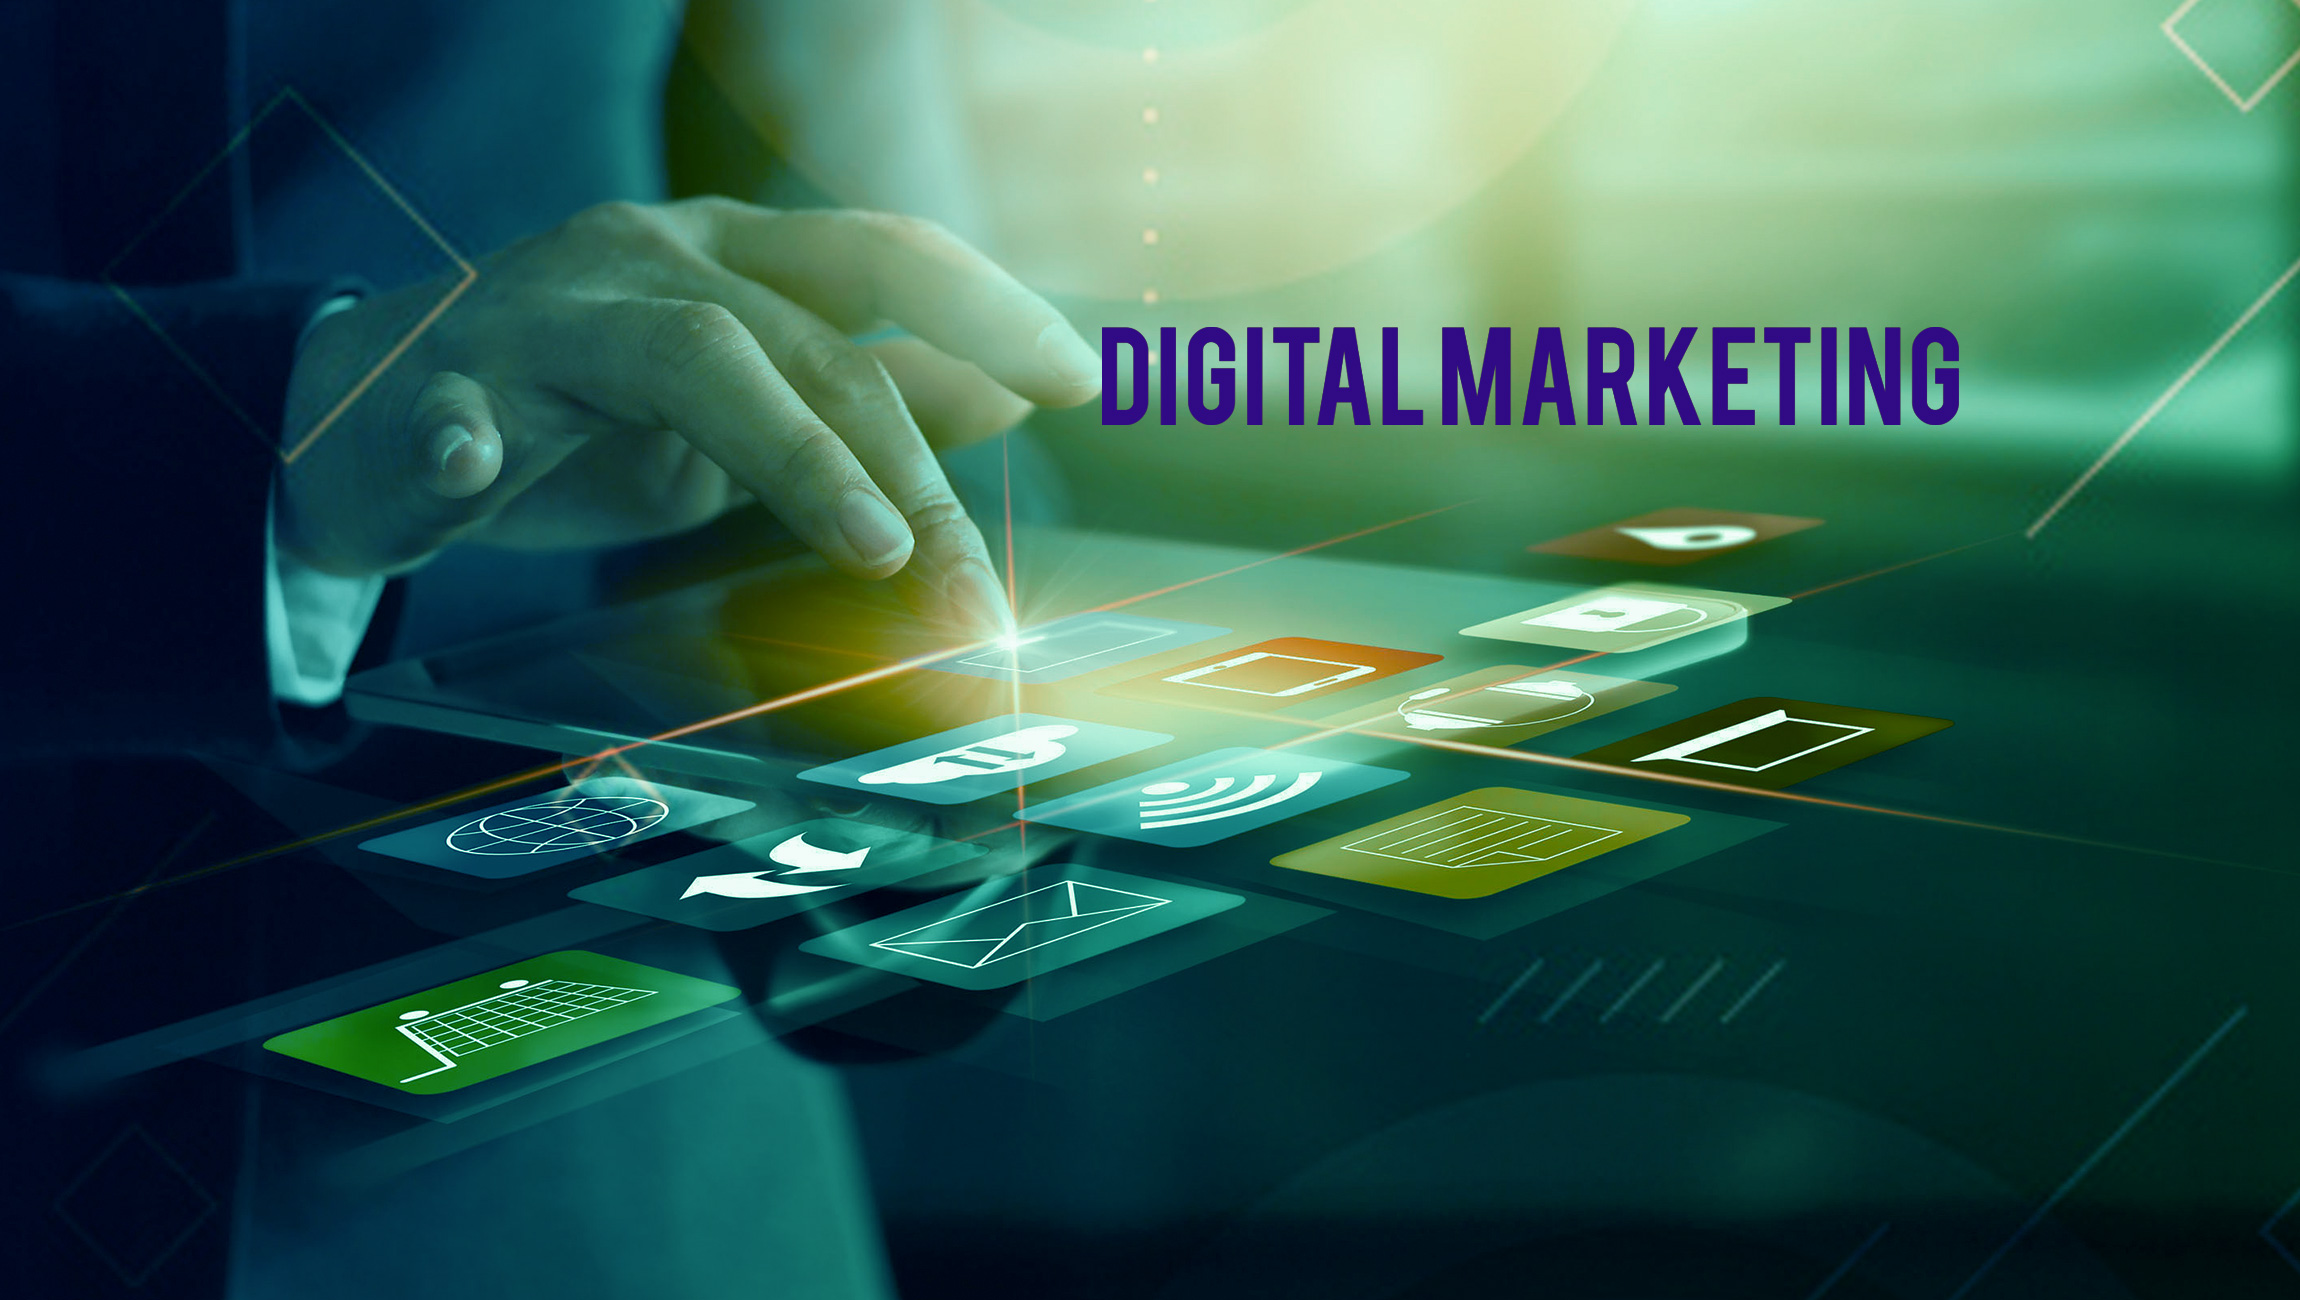 11 Digital Marketing Trends You Cannot Ignore in 2020